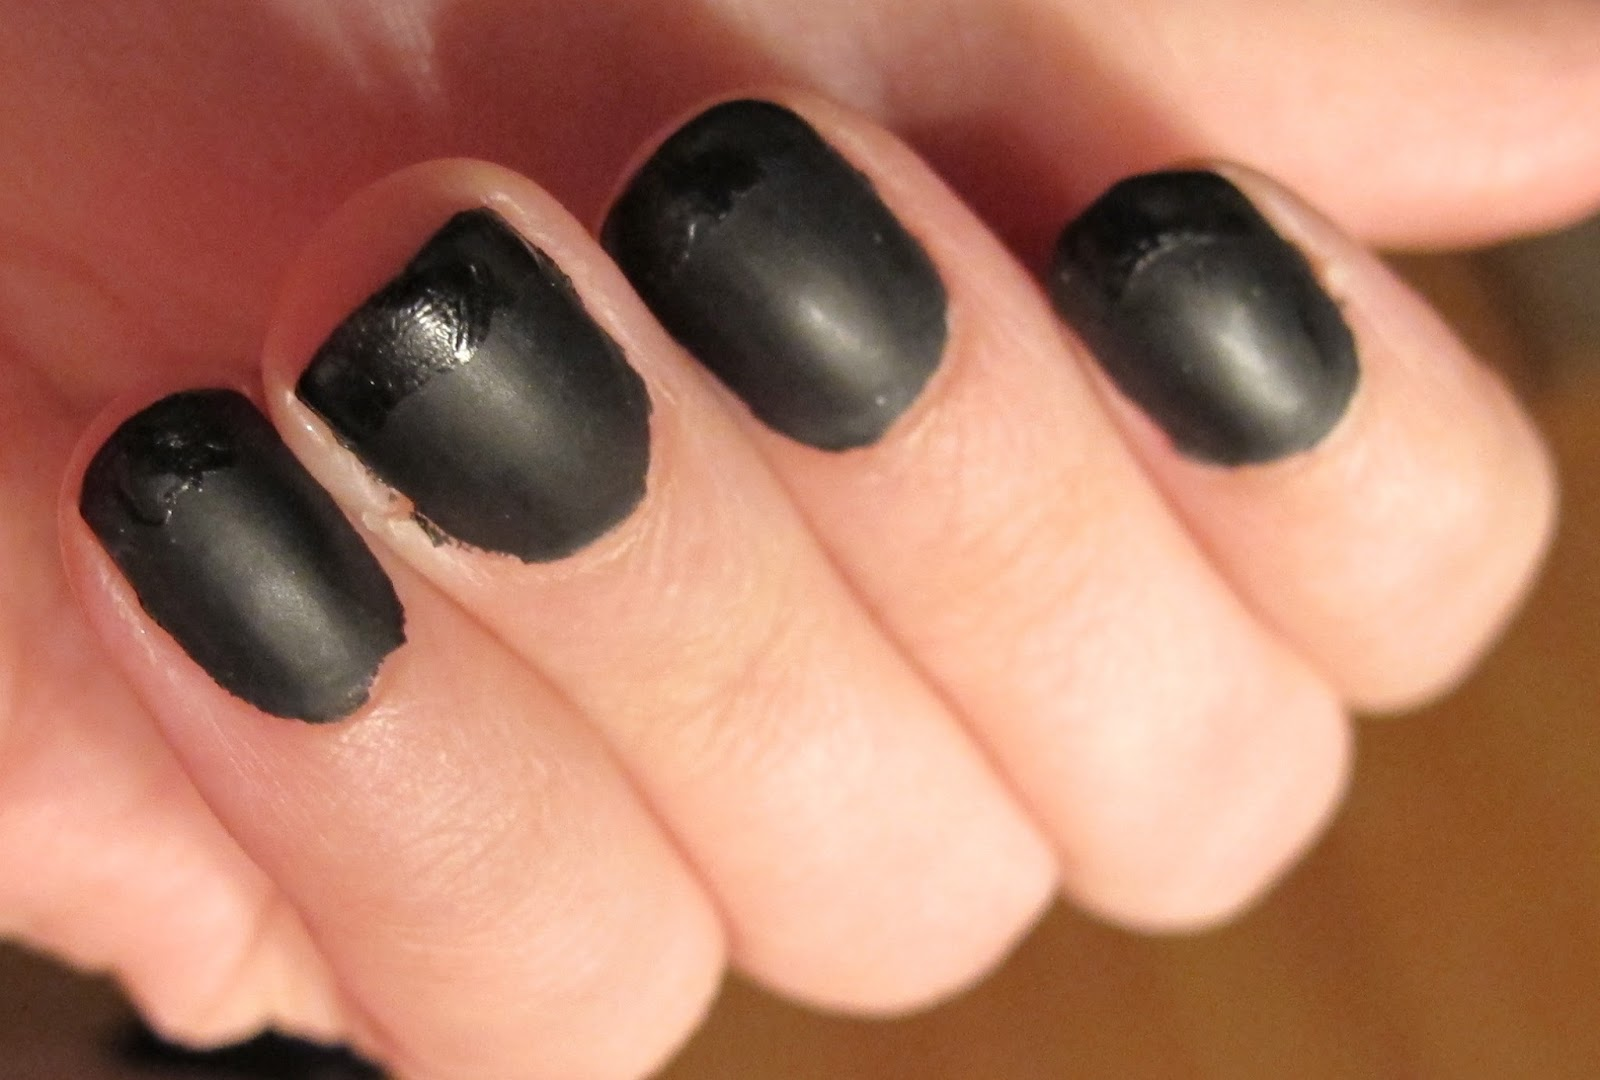 Steph Stud Makeup Matte Black French Manicure With Glossy Tips